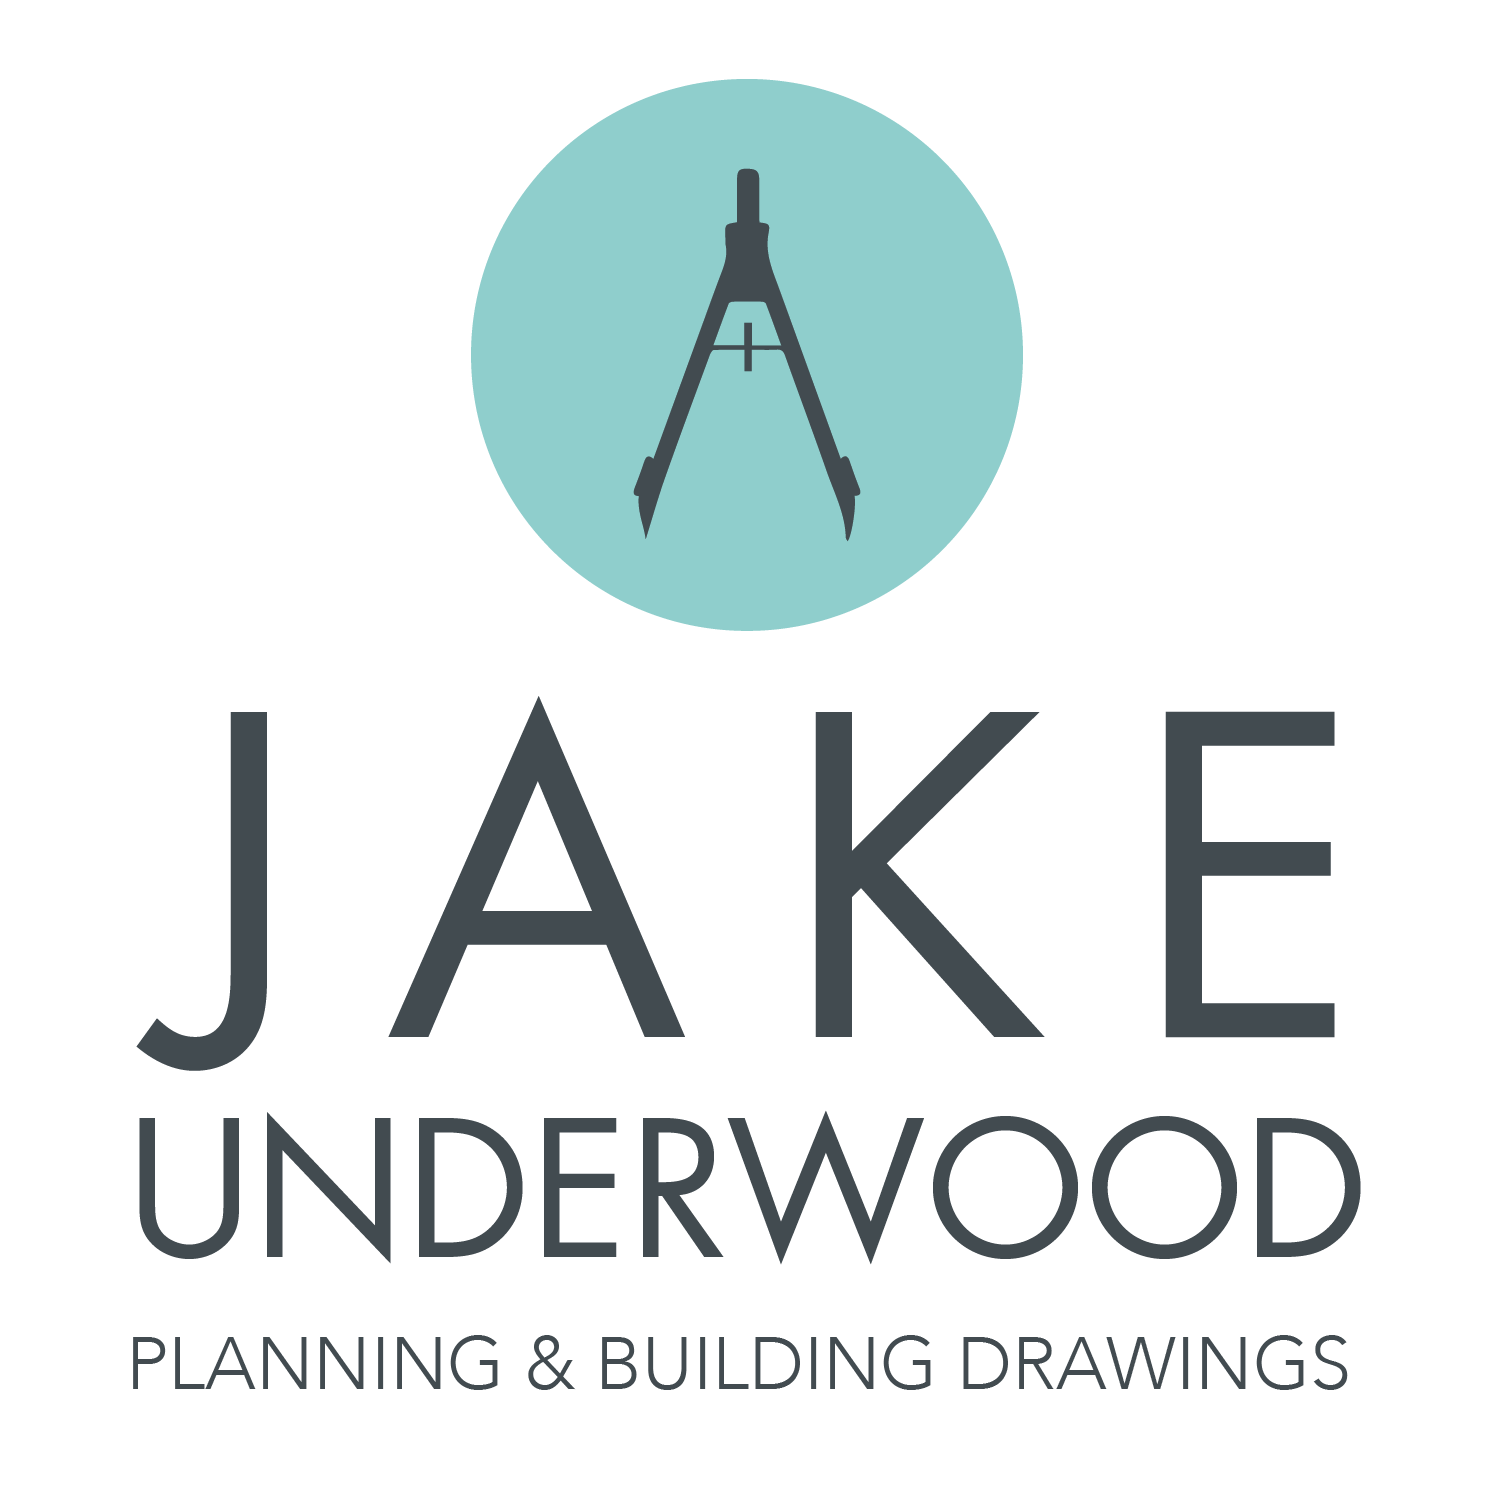 Jake Underwood